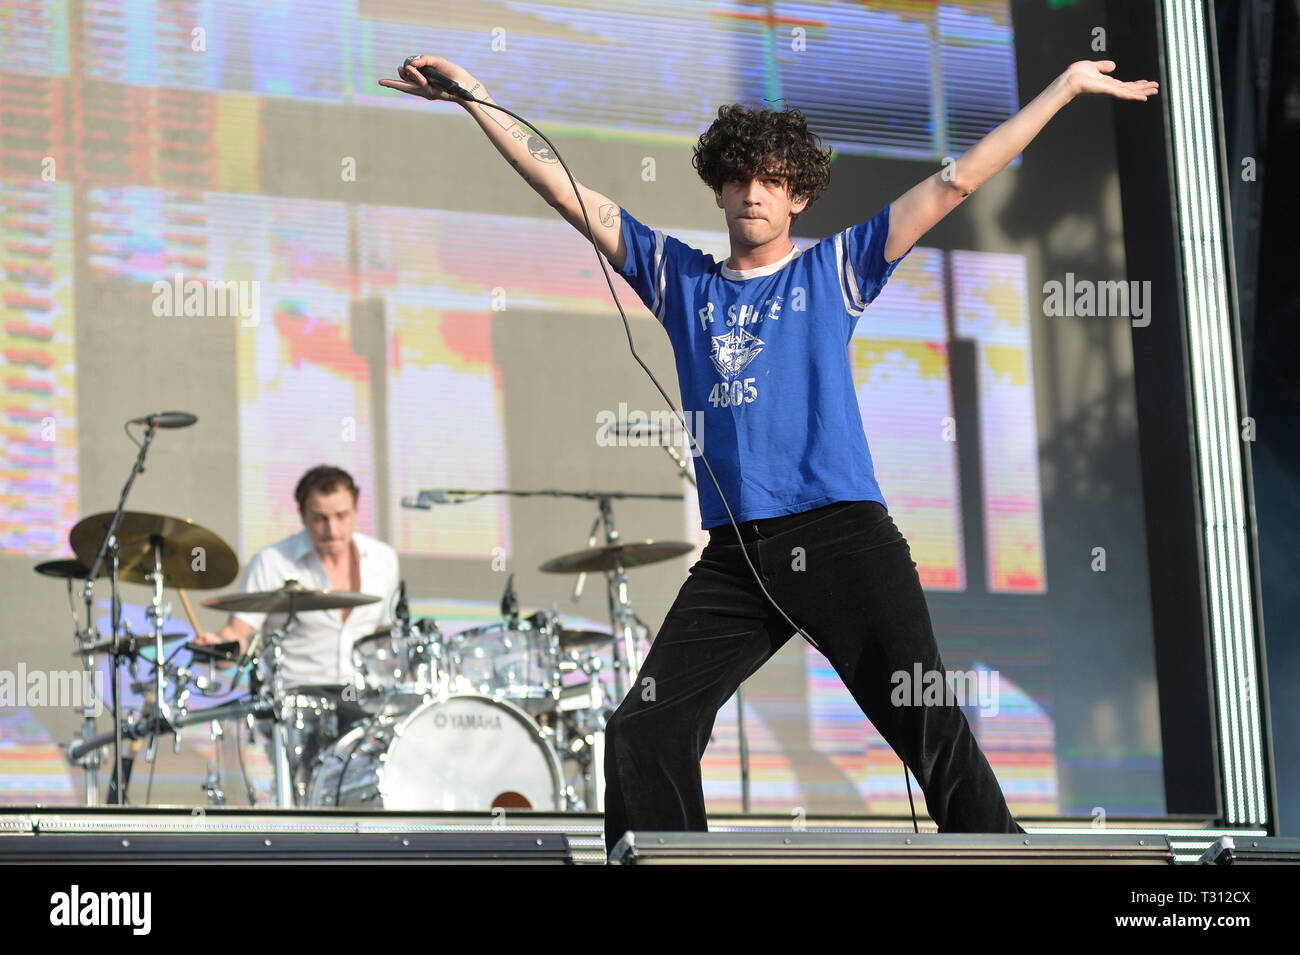 Sao Paulo, Brazil. 05th Apr, 2019. The 1975 is presented at the Lollapalooza 2019 festival, held at the Autodromo de Interlagos in São Paulo on Friday, 05. (PHOTO: LEVI BIANCO/BRAZIL PHOTO PRESS) Credit: Brazil Photo Press/Alamy Live News - Stock Image